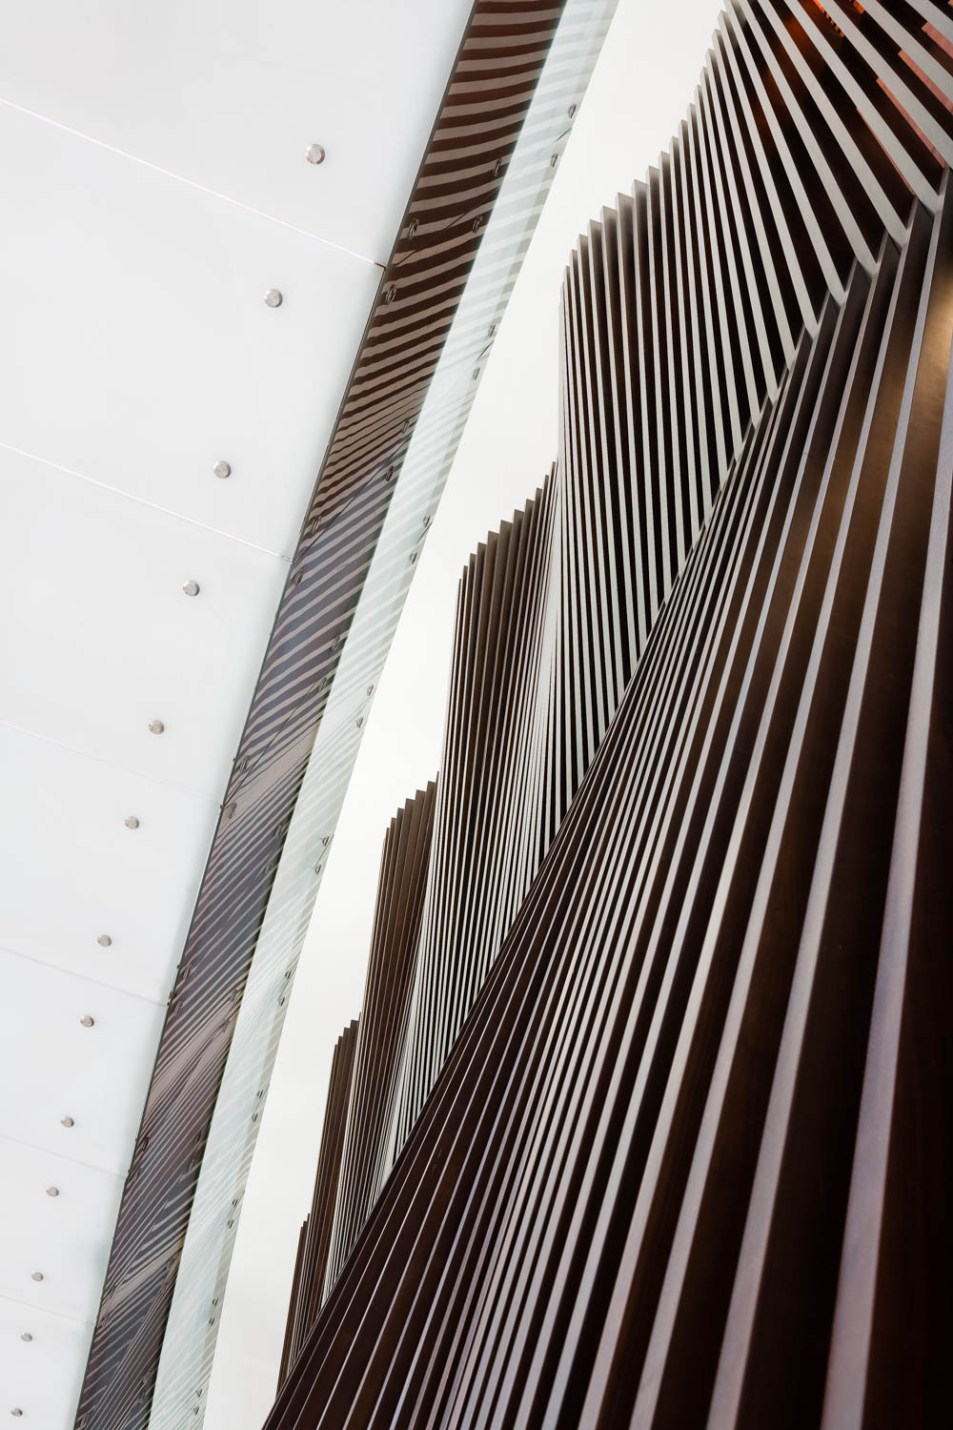 An architectural photograph showing the wooden sculptural wall and overhead walkway at the Address hotel in the downtown area of Dubai by photographer, Duncan Chard